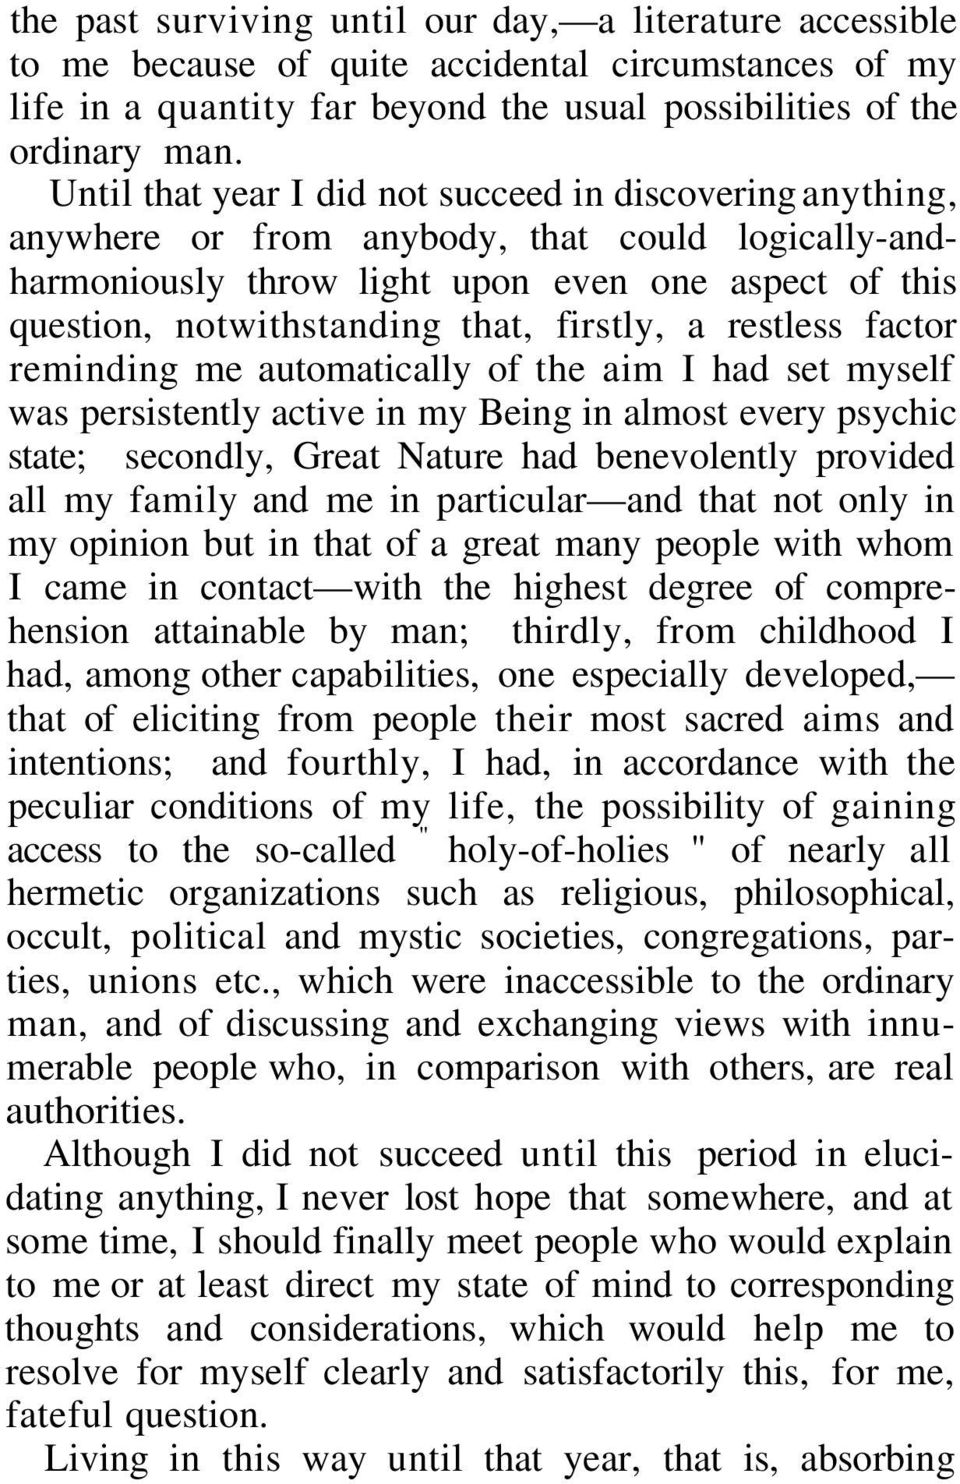 firstly, a restless factor reminding me automatically of the aim I had set myself was persistently active in my Being in almost every psychic state; secondly, Great Nature had benevolently provided